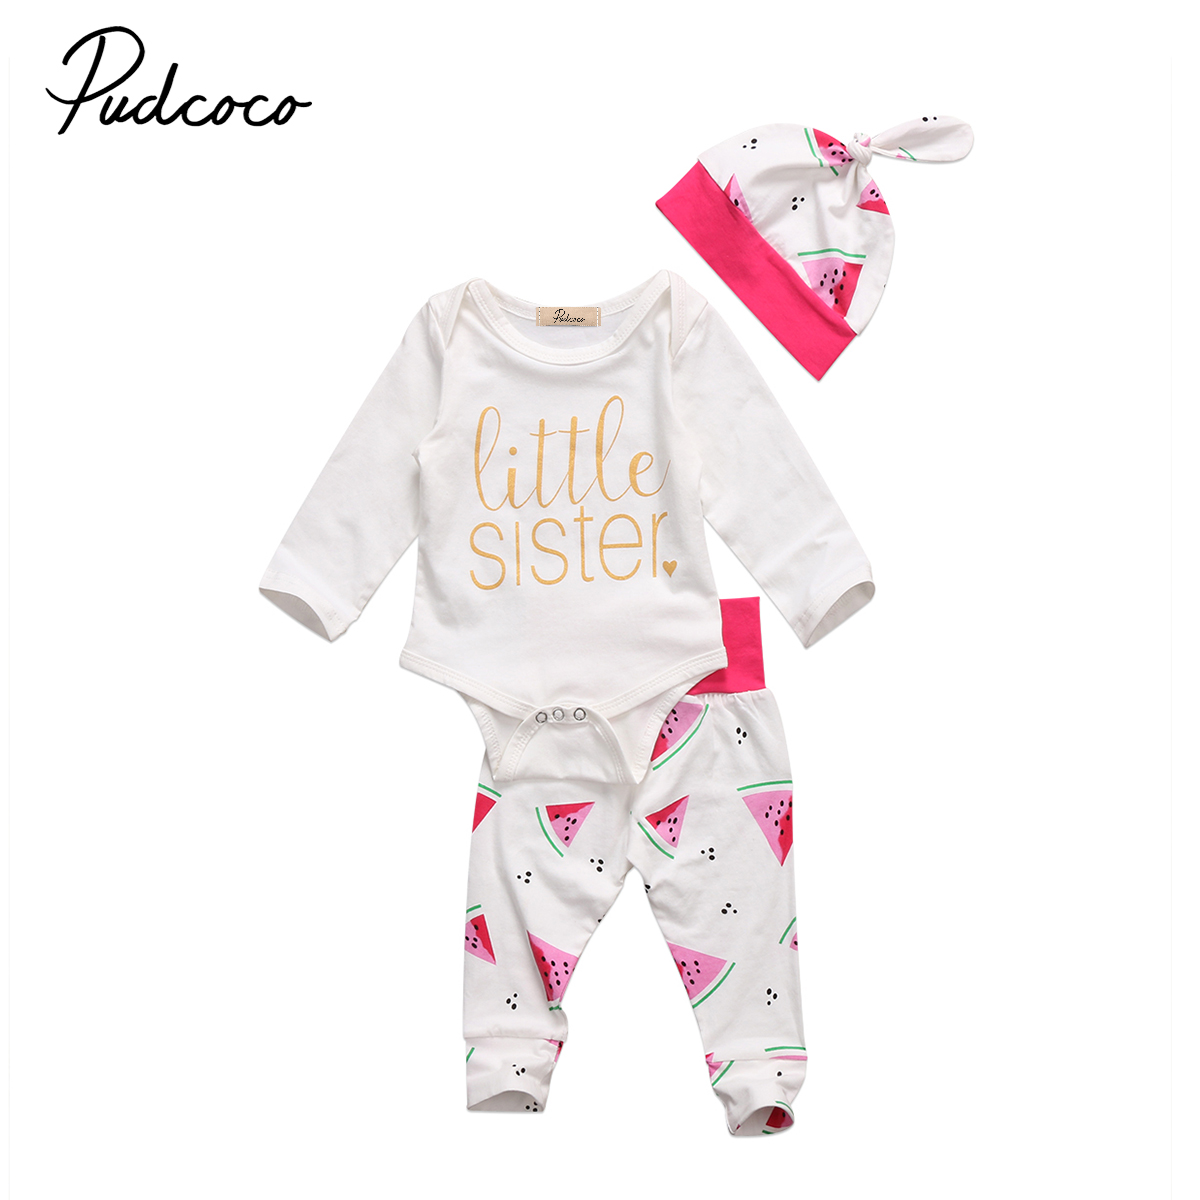 PUDCOCO Brand Clothes Set Cute Newborn Baby Girls Cotton Fashion Tops Romper Pants Hat 3Pcs Outfits Set Clothes 0-18M